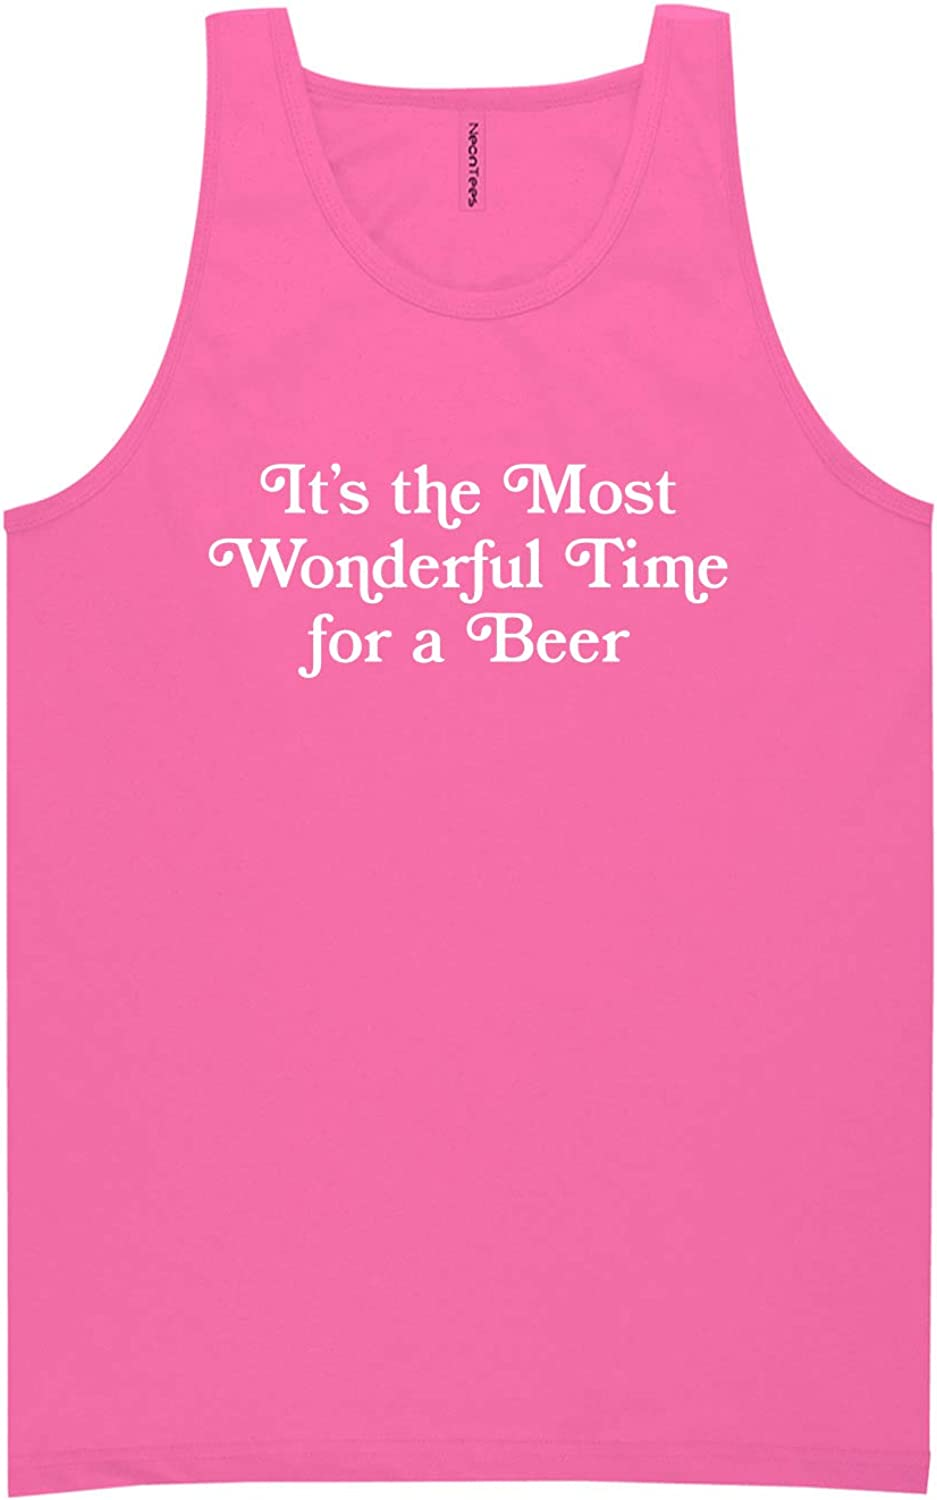 It's The Most Wonderful Time Neon Pink Tank Top - XX-Large